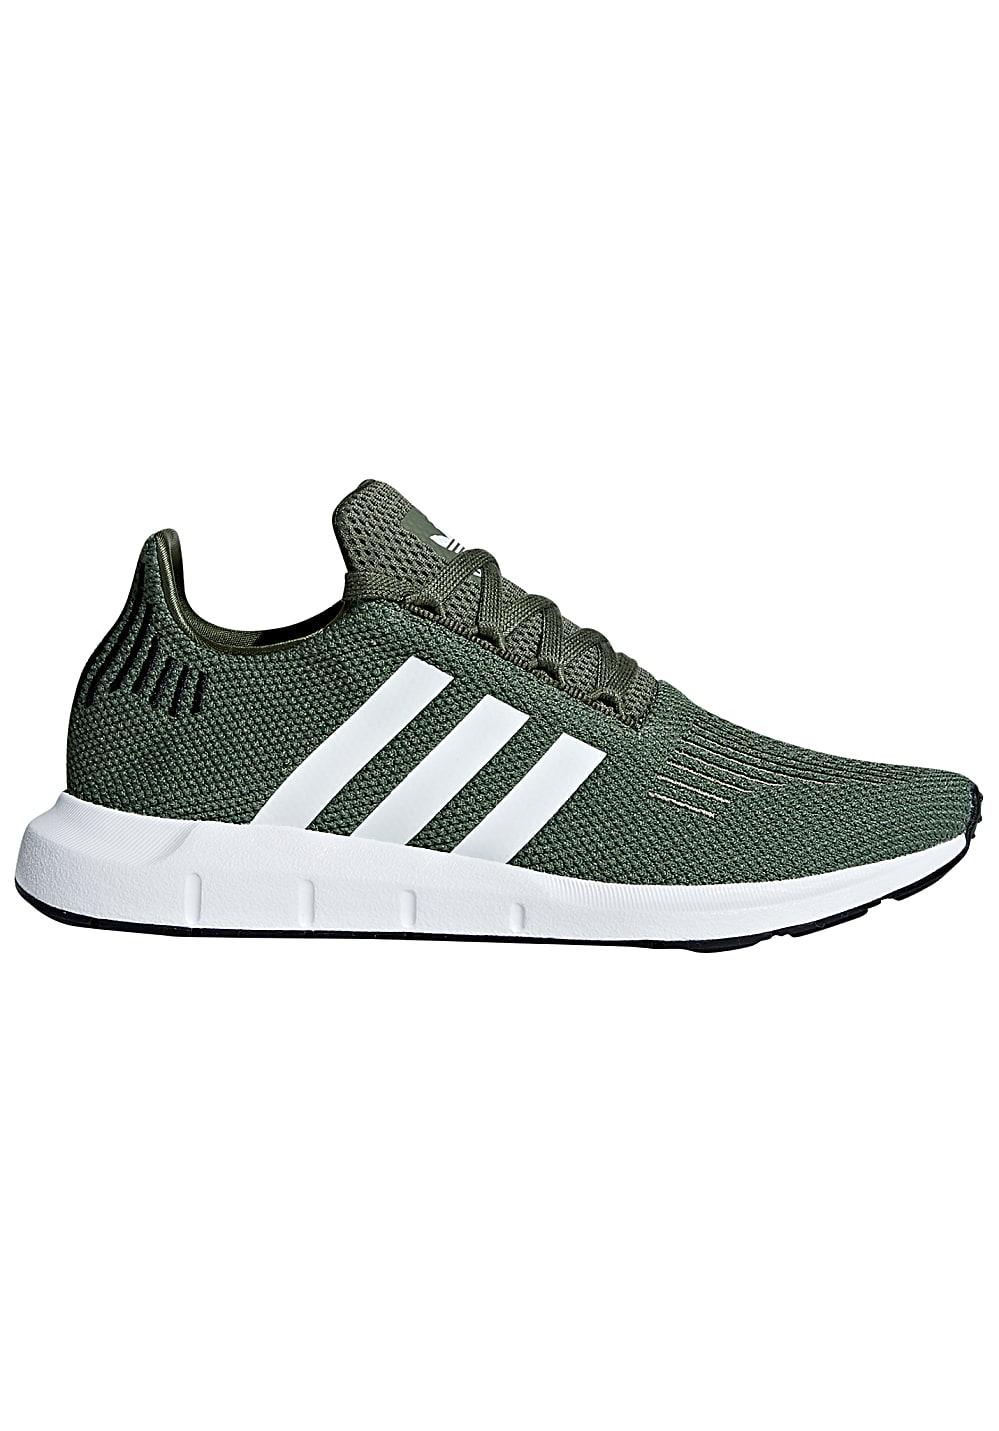 adidas Originals Swift Run Sneaker für Damen Grün